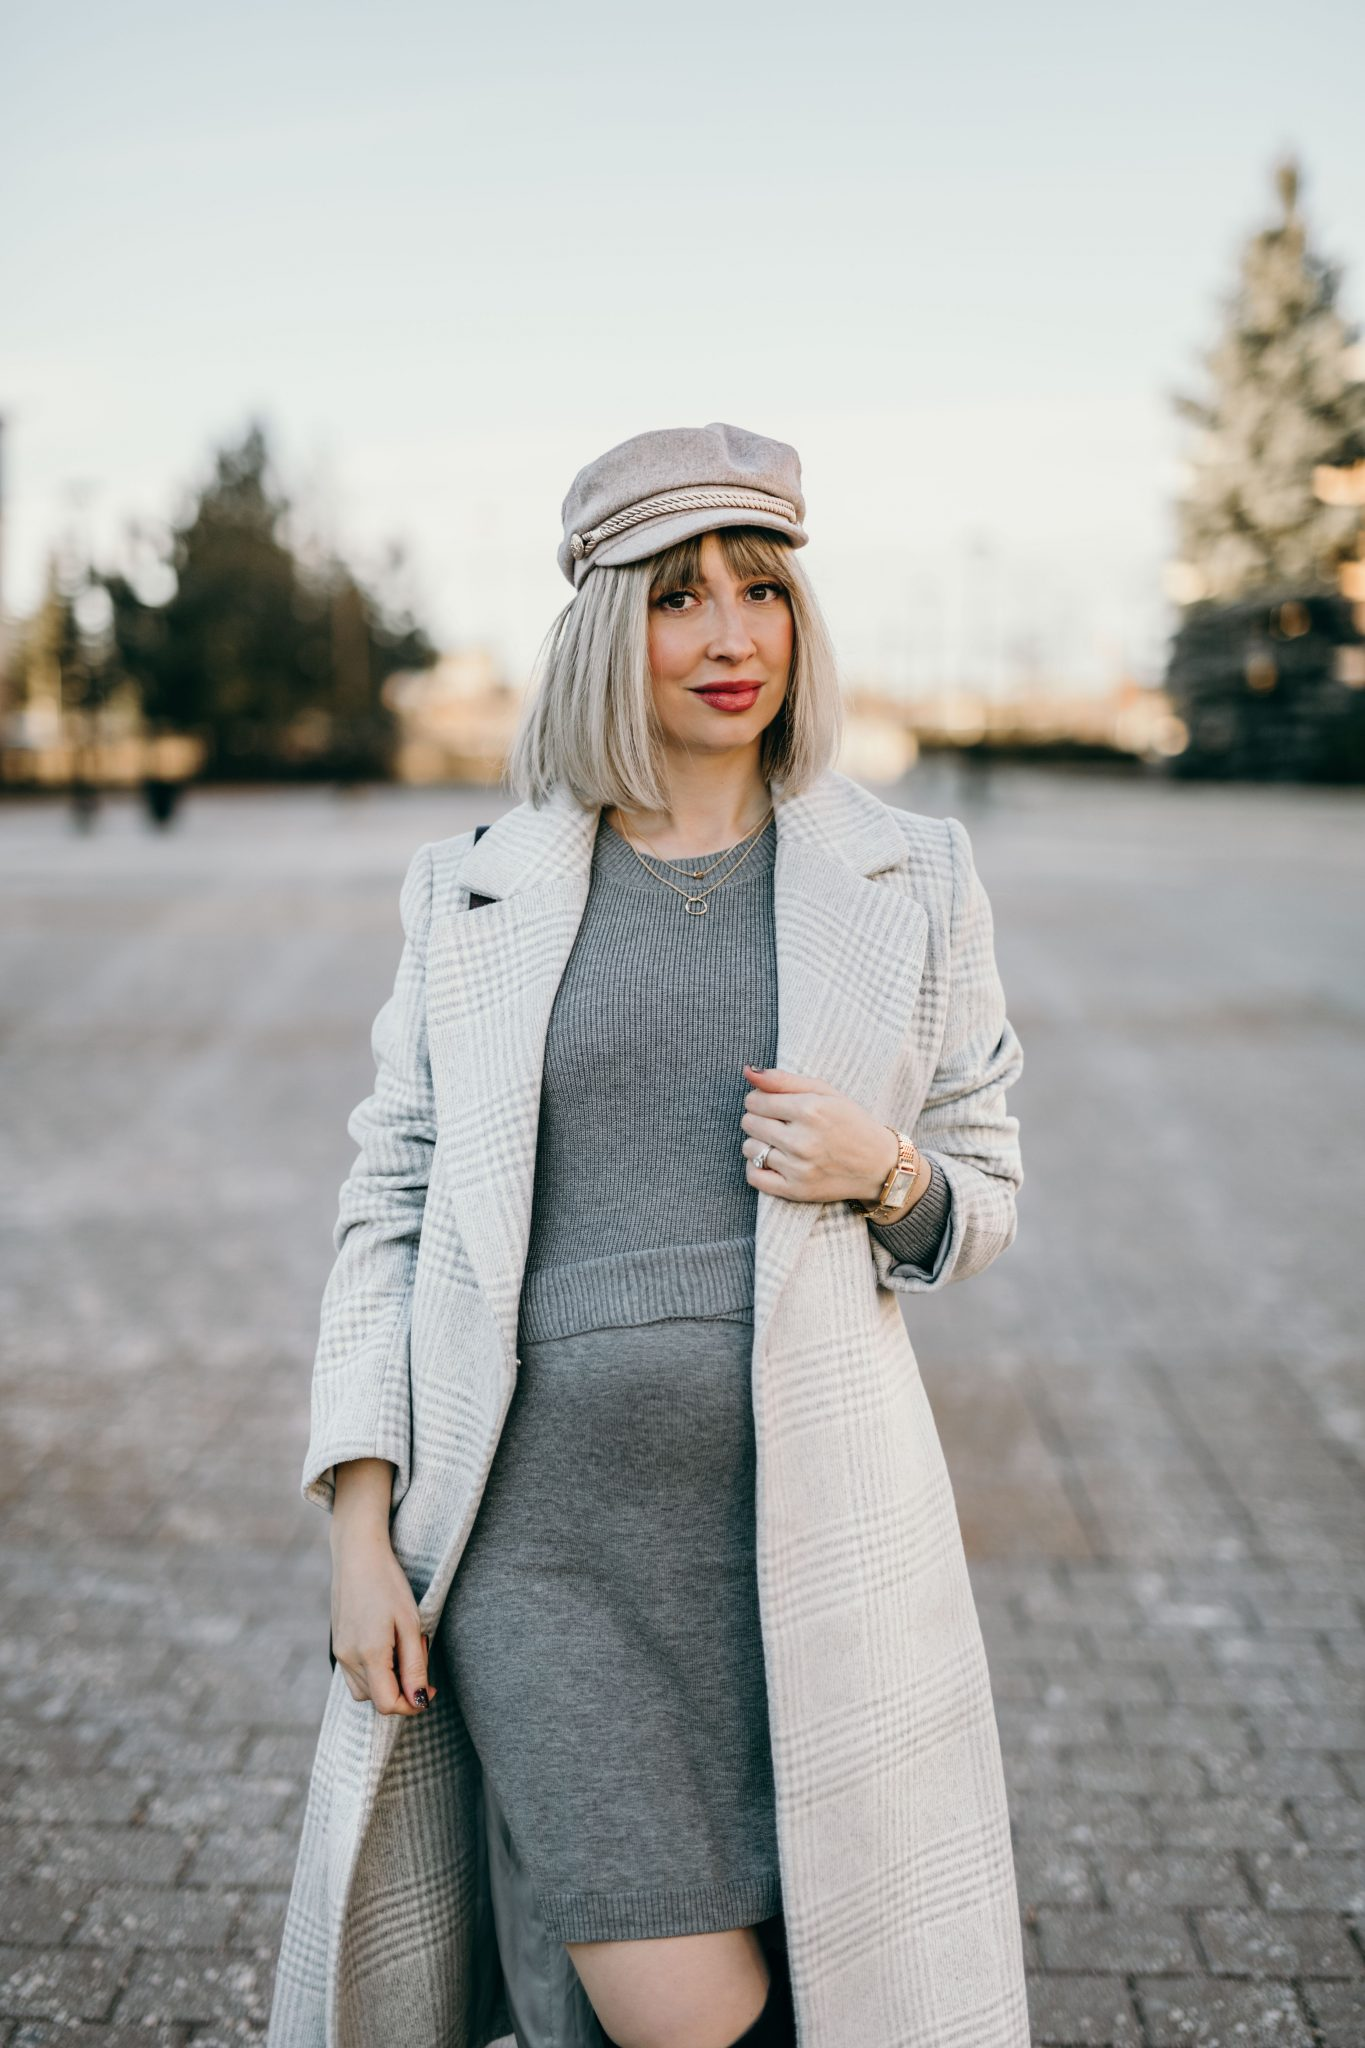 Winter Pregnancy Outfit wool coat & knit dress 4